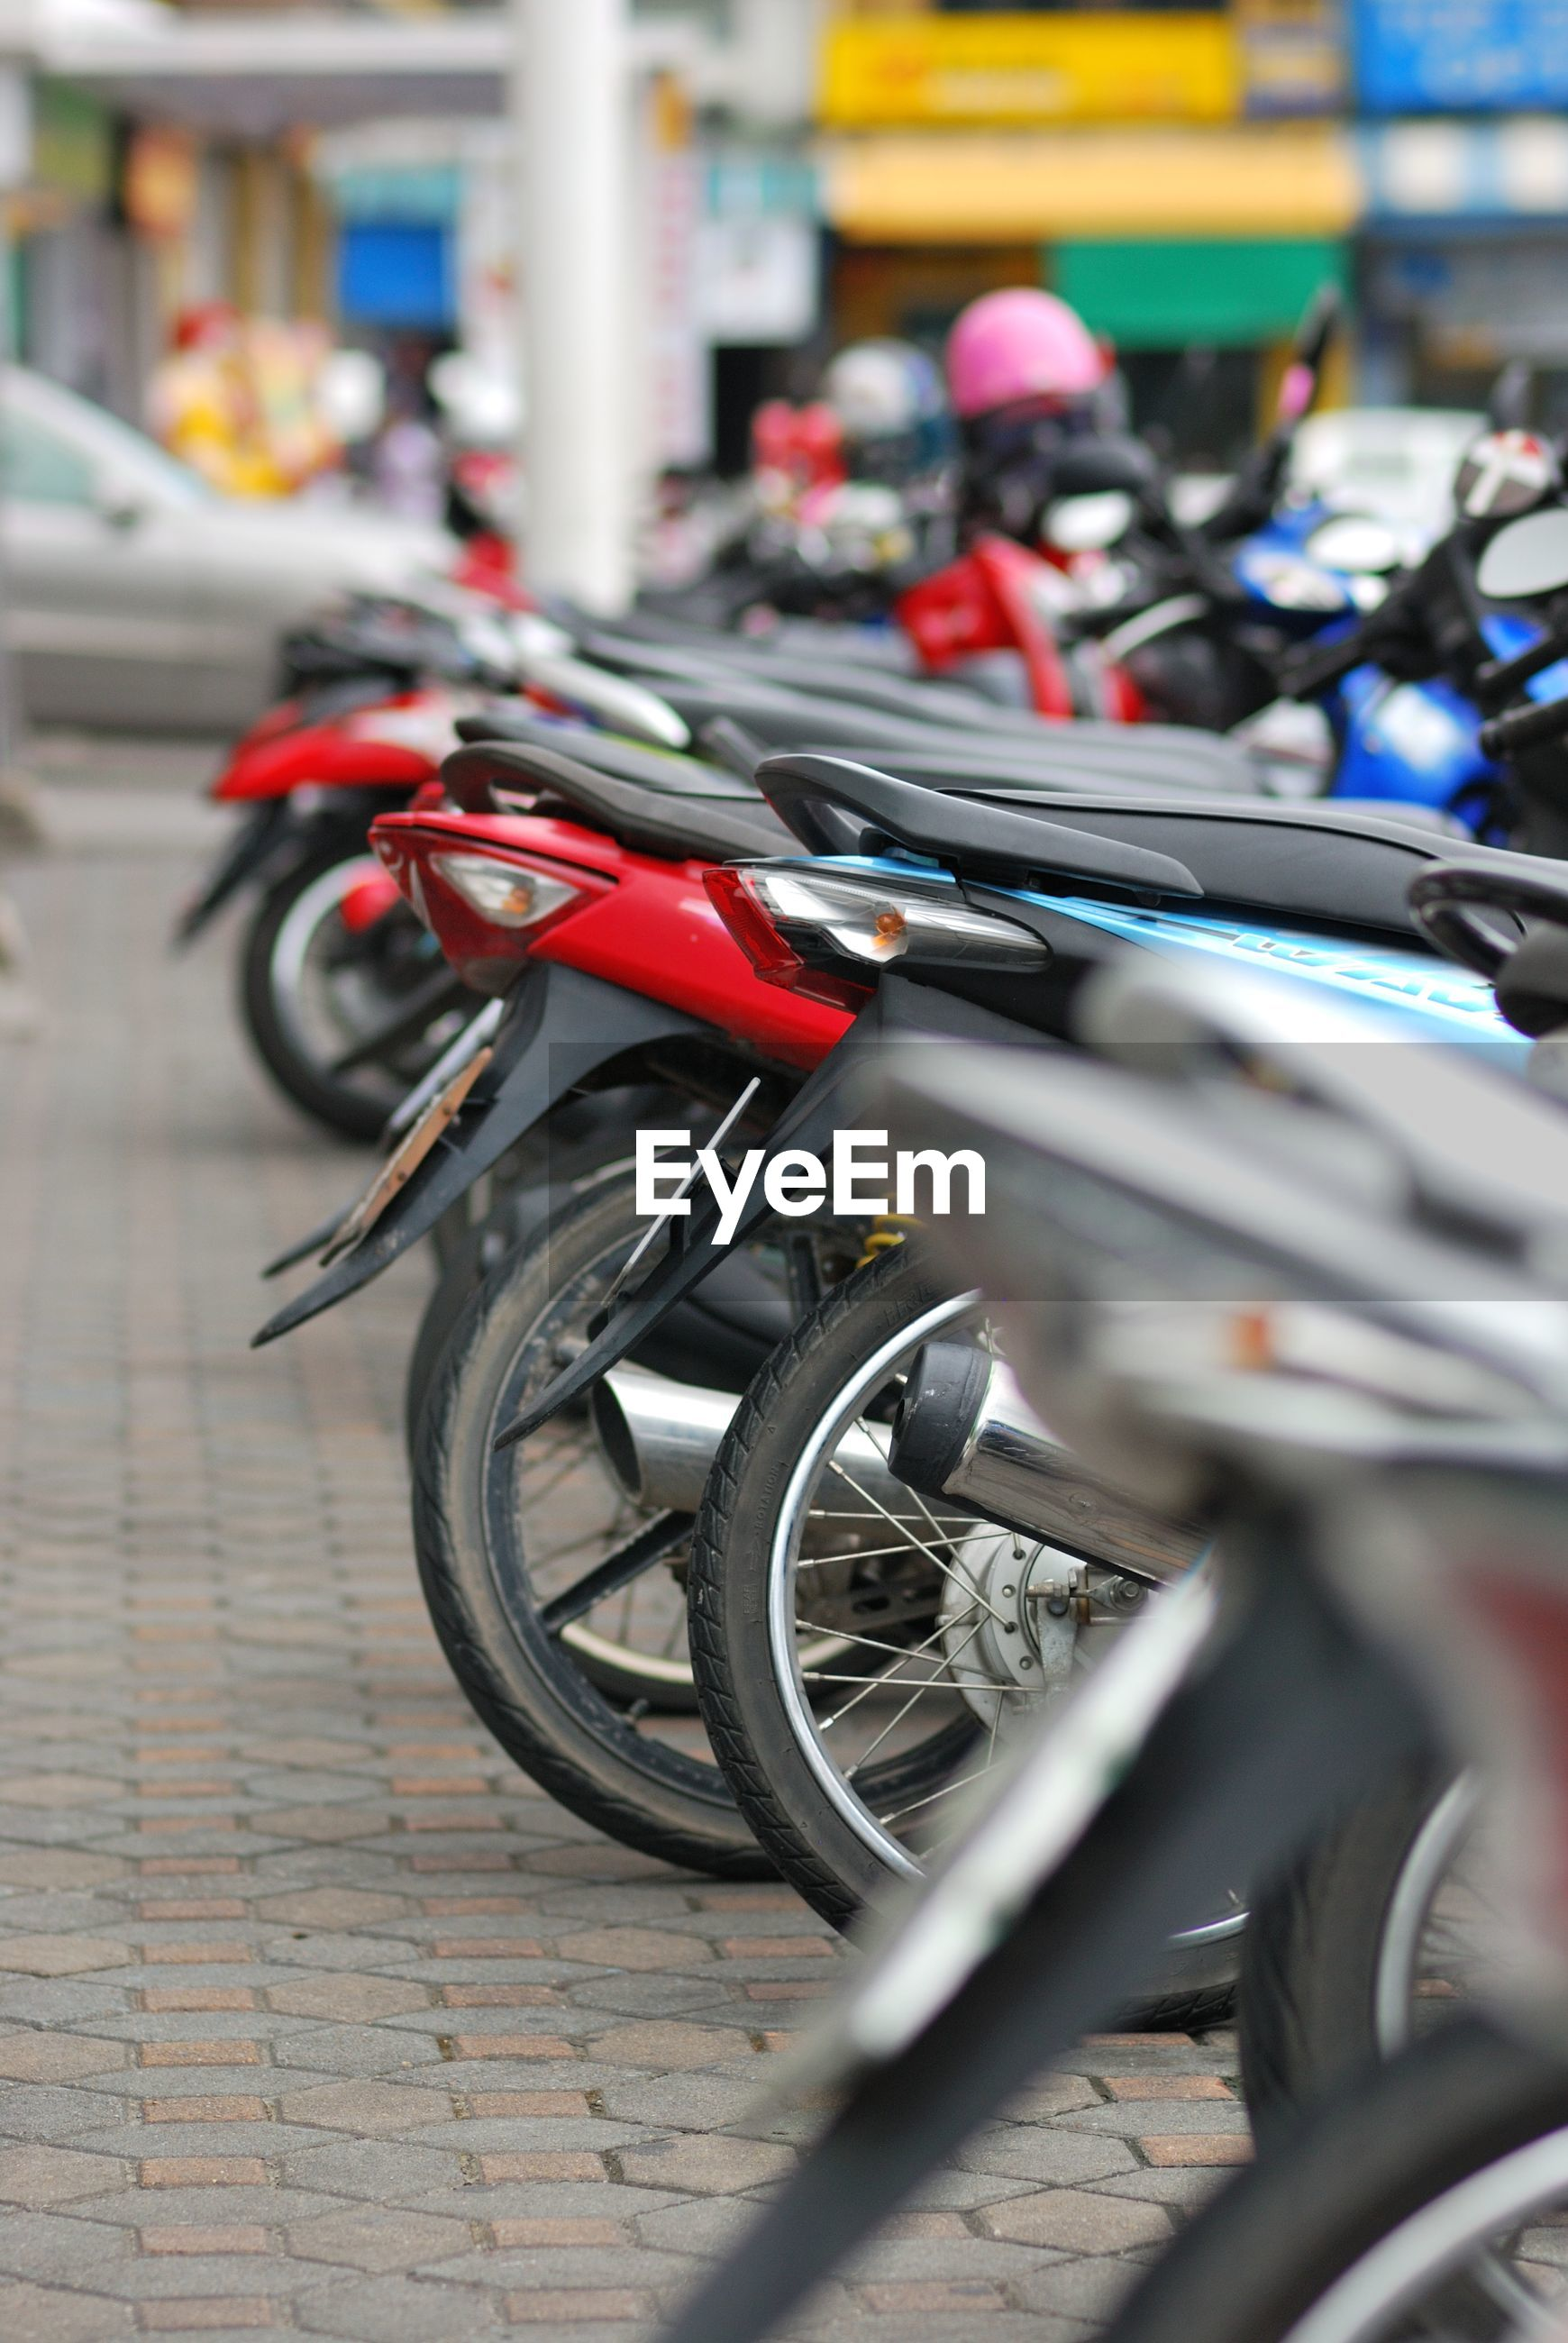 Motorcycles parked on footpath